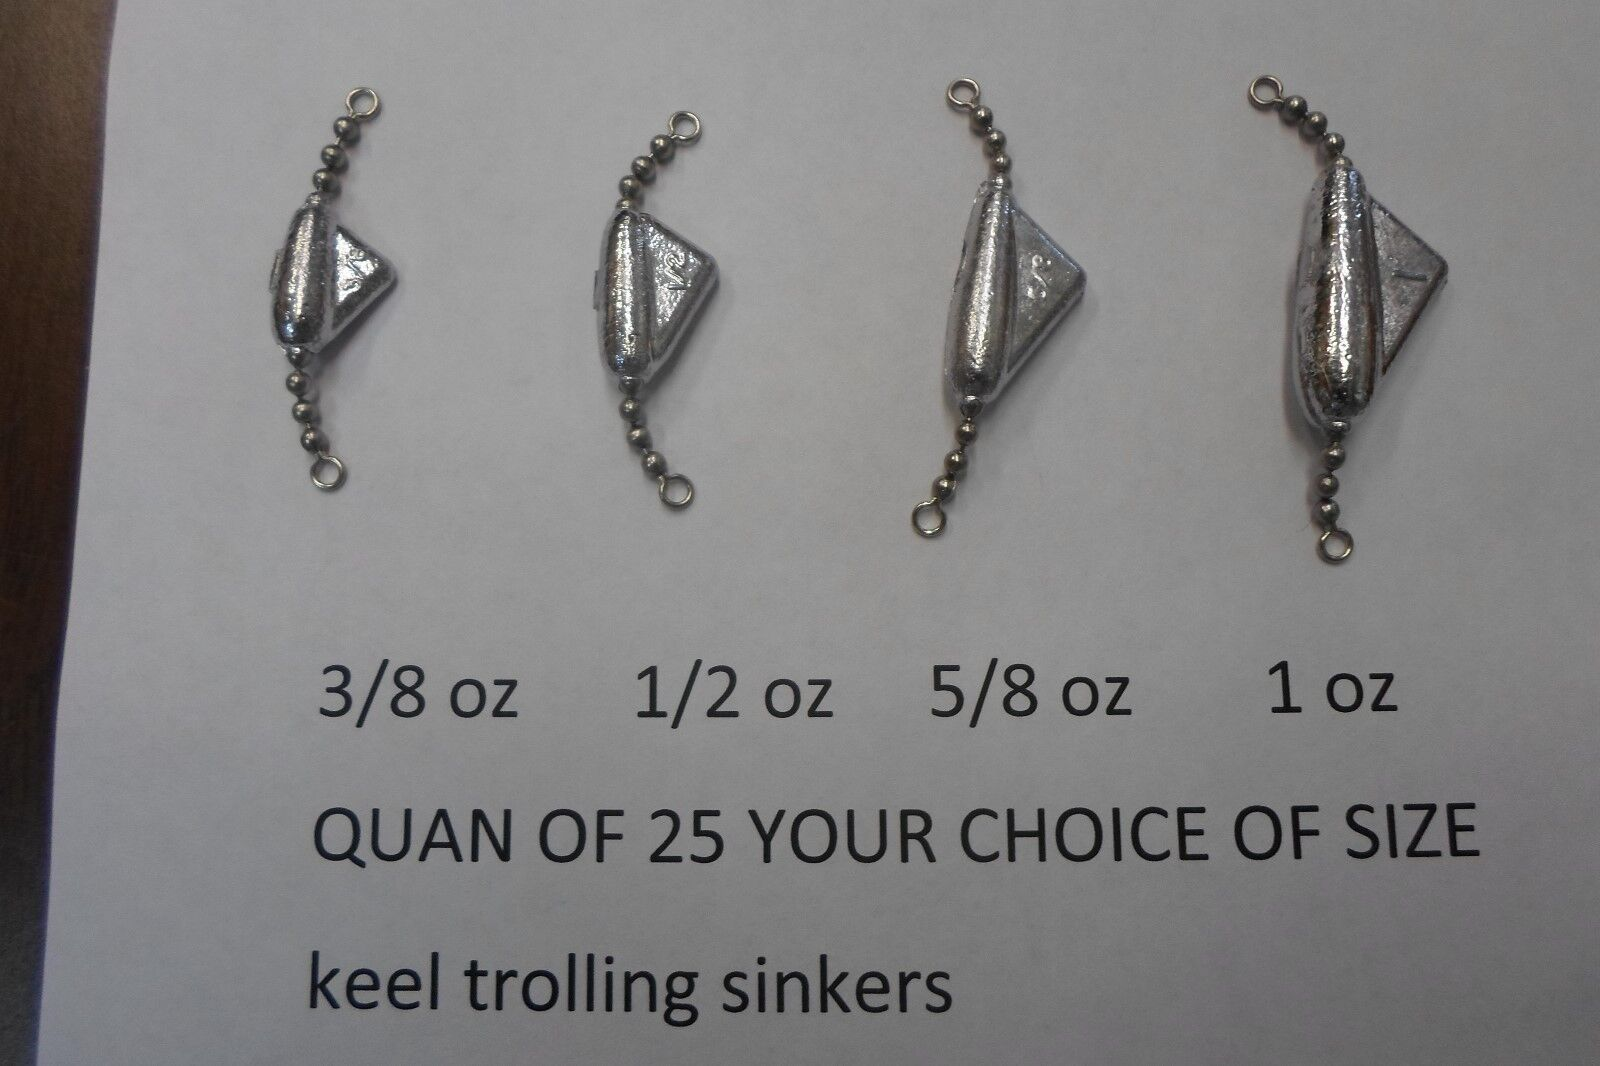 QUAN OF 25 KEEL SINKERS TROLLING 3 8,1 2,5 8,1 OZ YOUR CHOICE